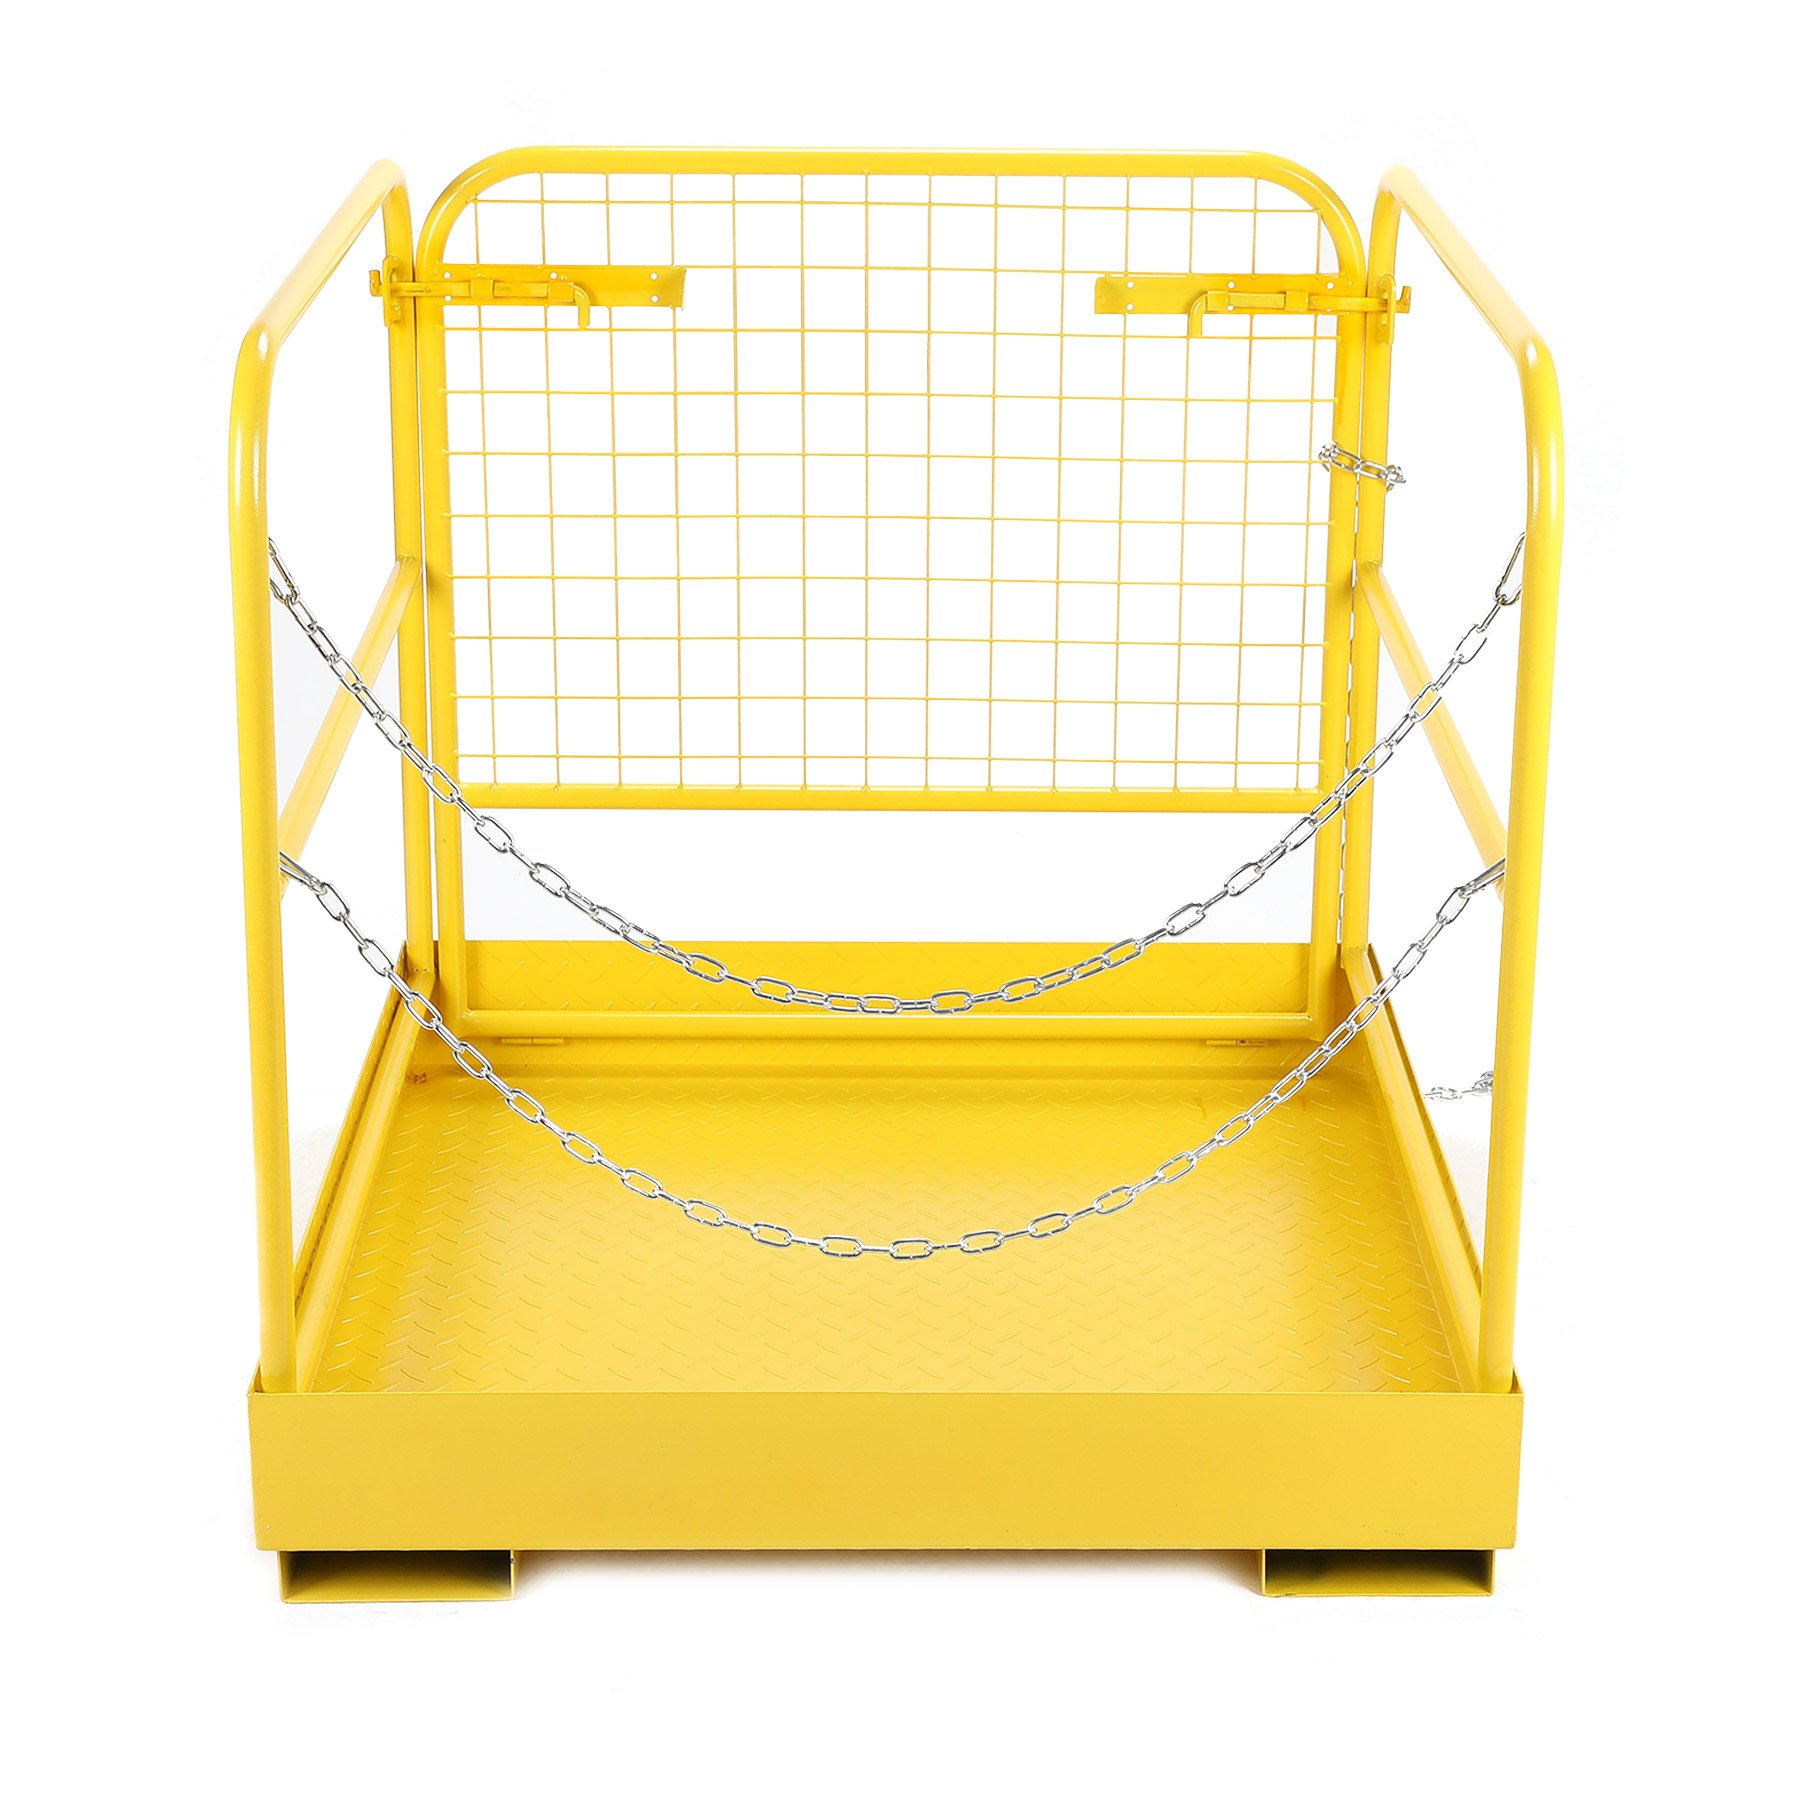 CO-Z Heavy Duty Forklift Safety Cage Steel Work Platform 749 lb. Capacity, 36''x36''